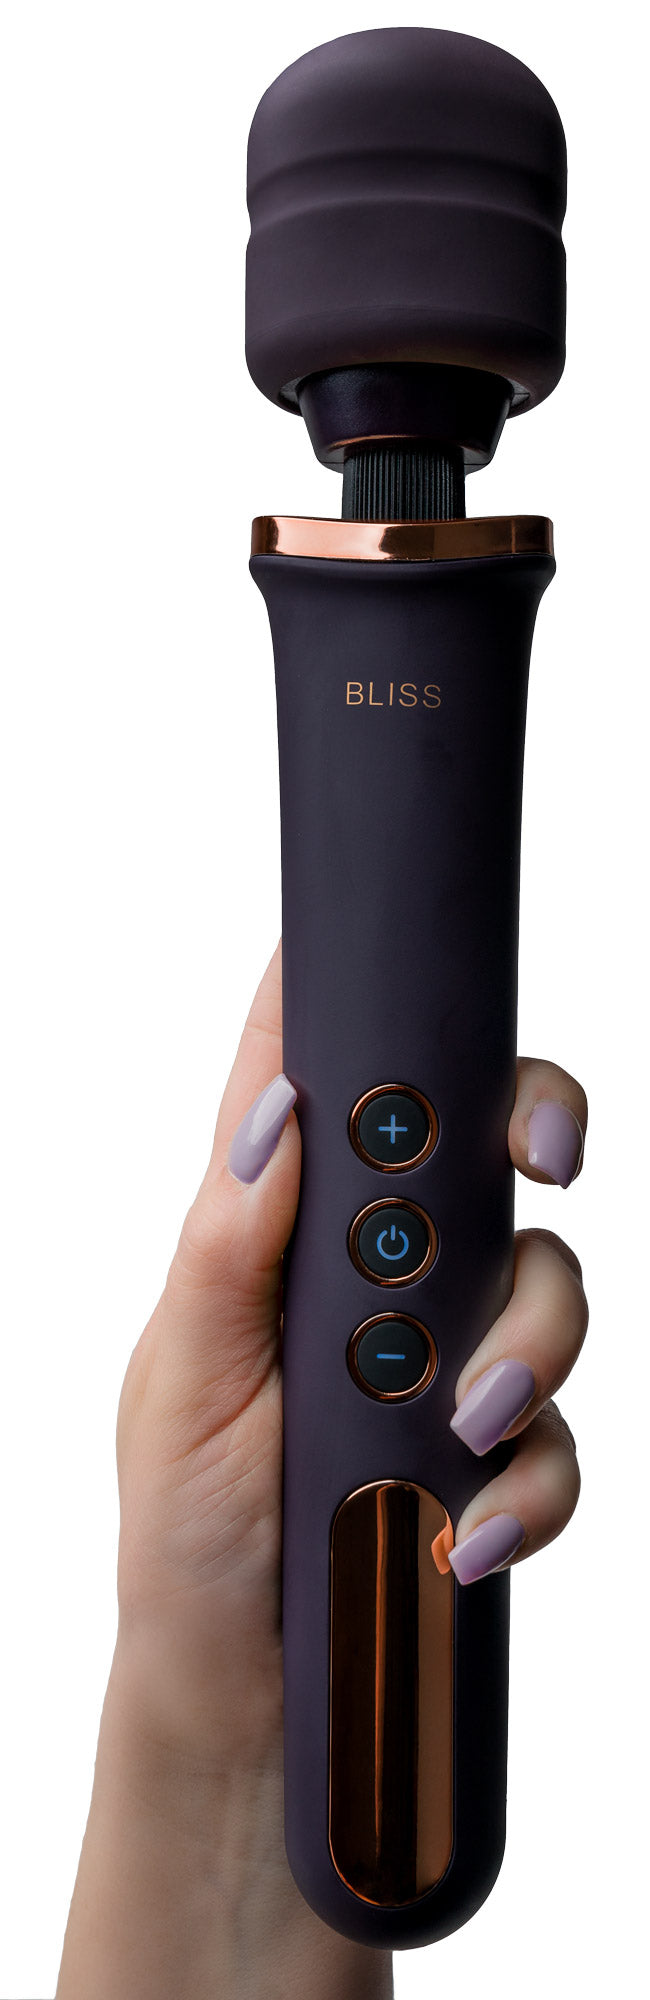 BLISS Wand - Rechargeable, Powerful & Whisper quiet